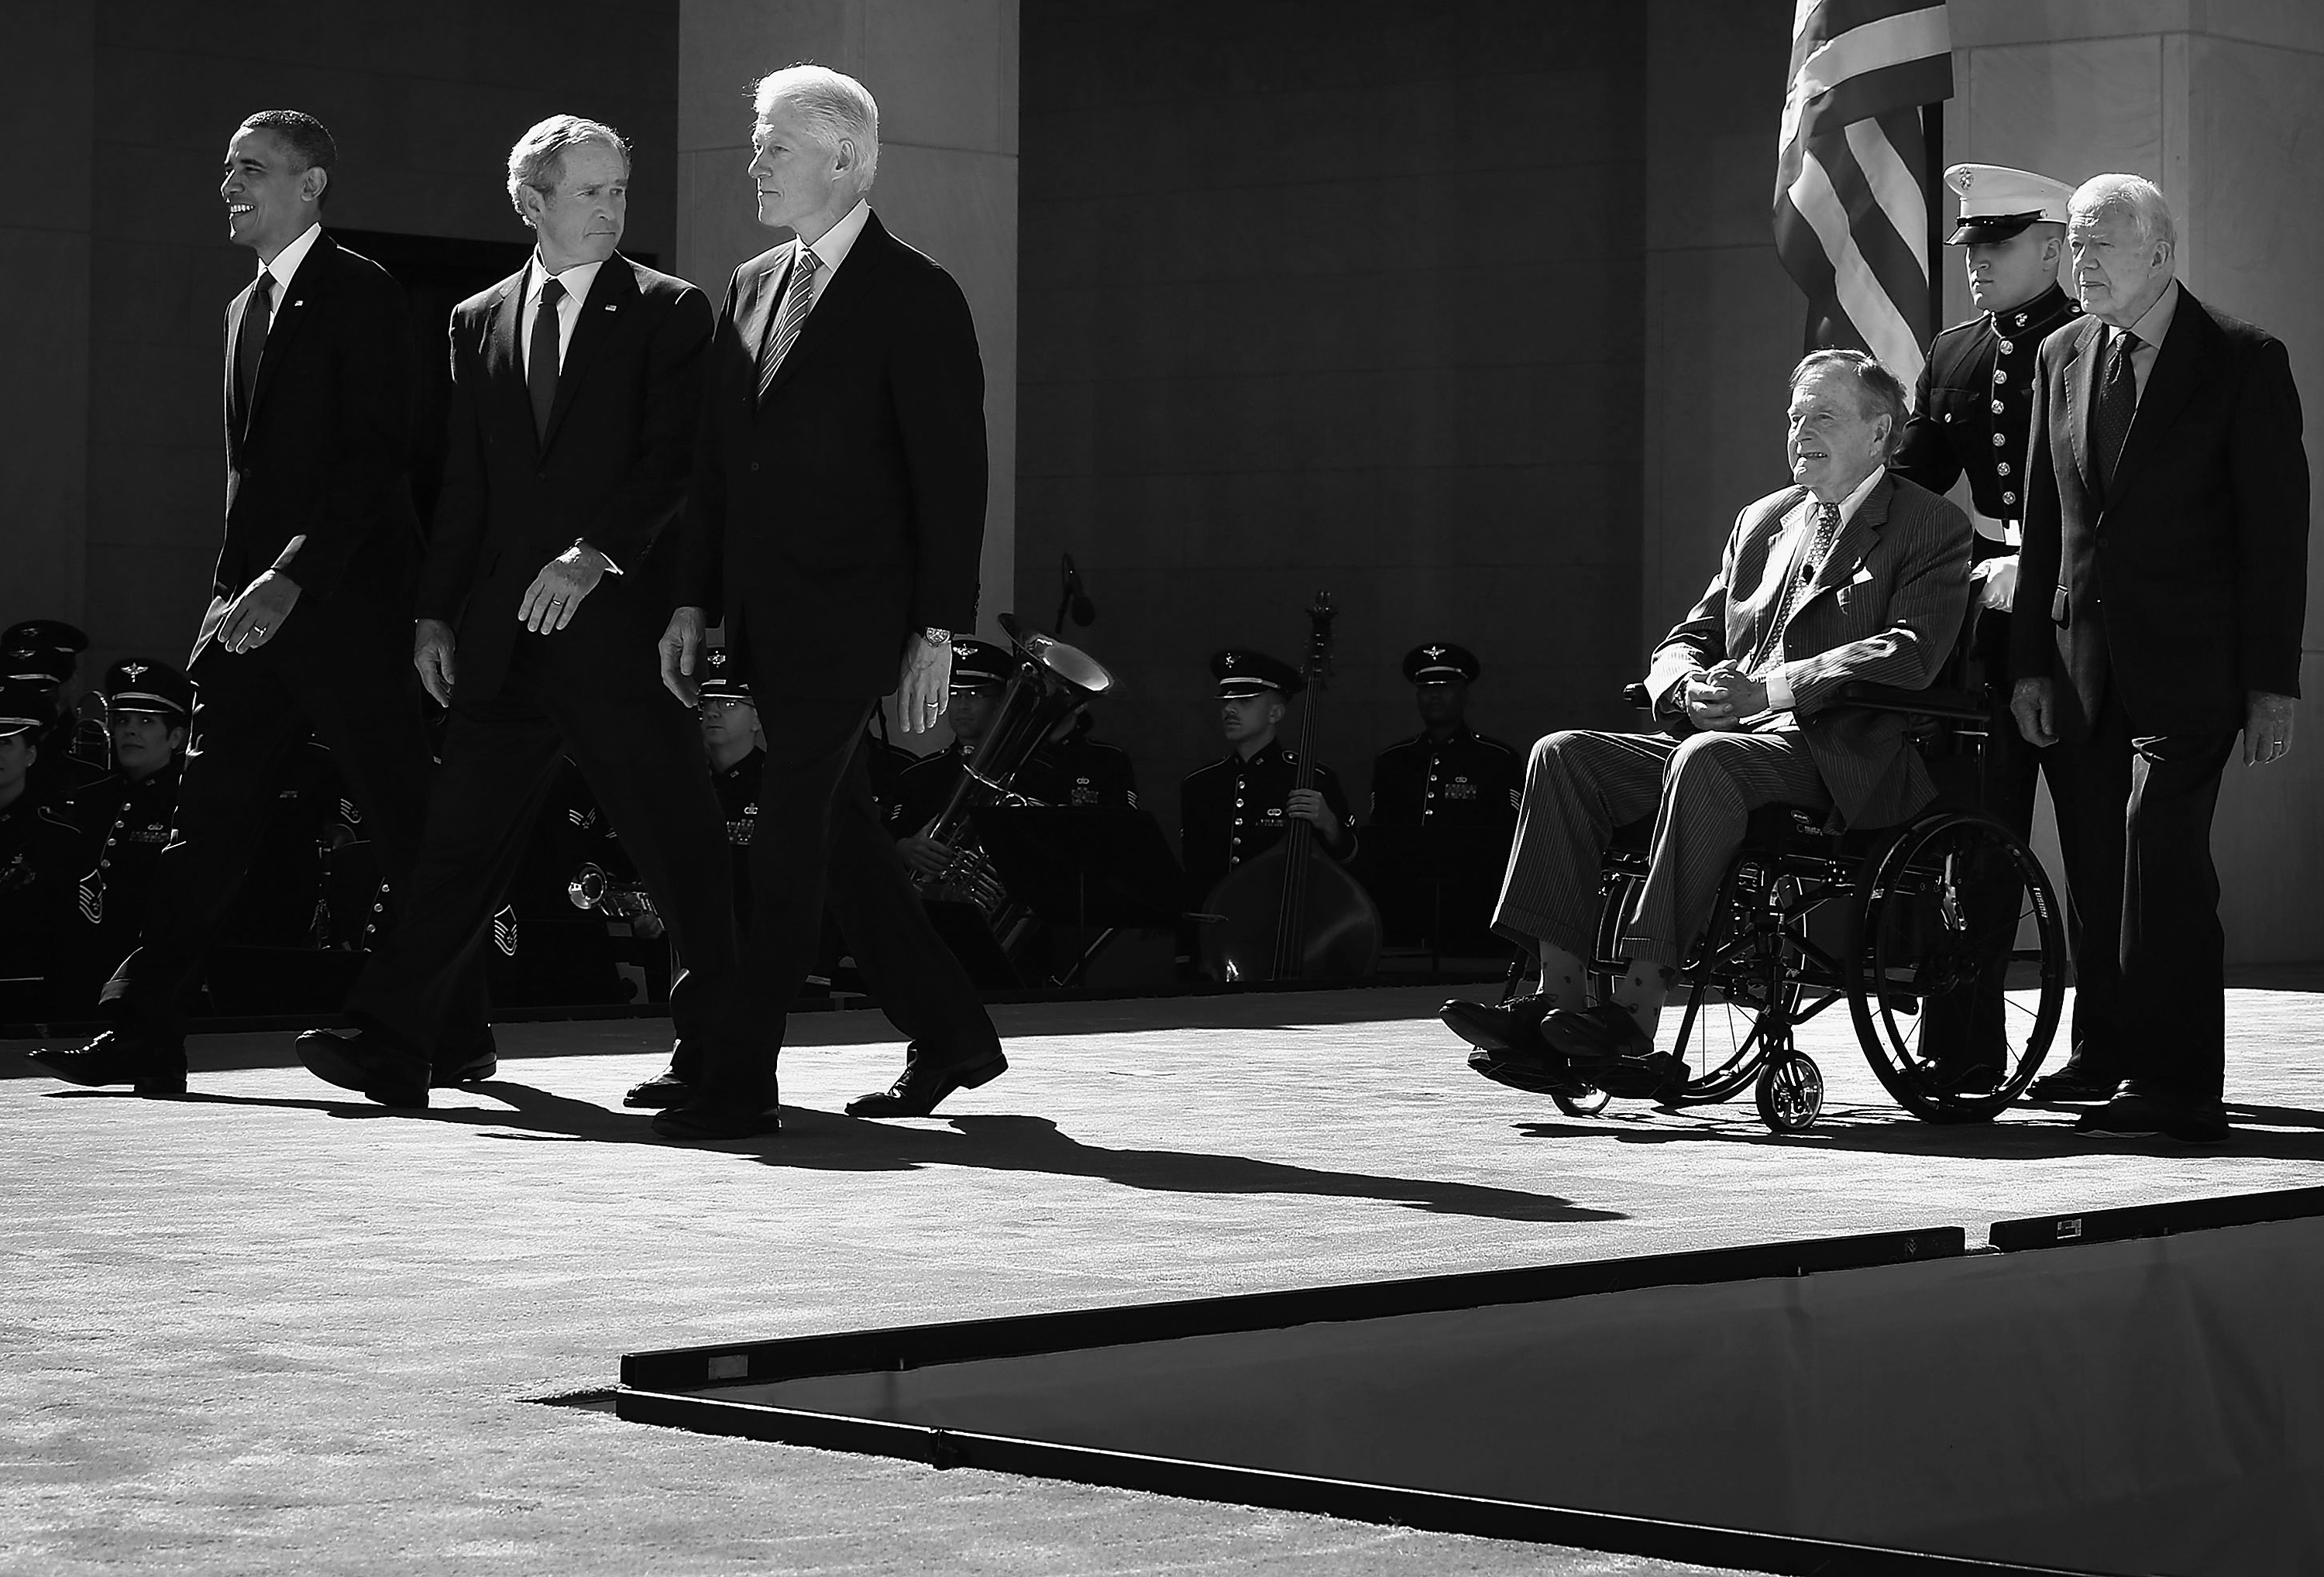 Former U.S. President George W. Bush turns around and checks on his father and former President George H.W. Bush as all five living presidents, including Barack Obama, Bill Clinton and Jimmy Carter, come out on stage during the opening ceremony of the George W. Bush Presidential Center on April 25, 2013 in Dallas, Texas.